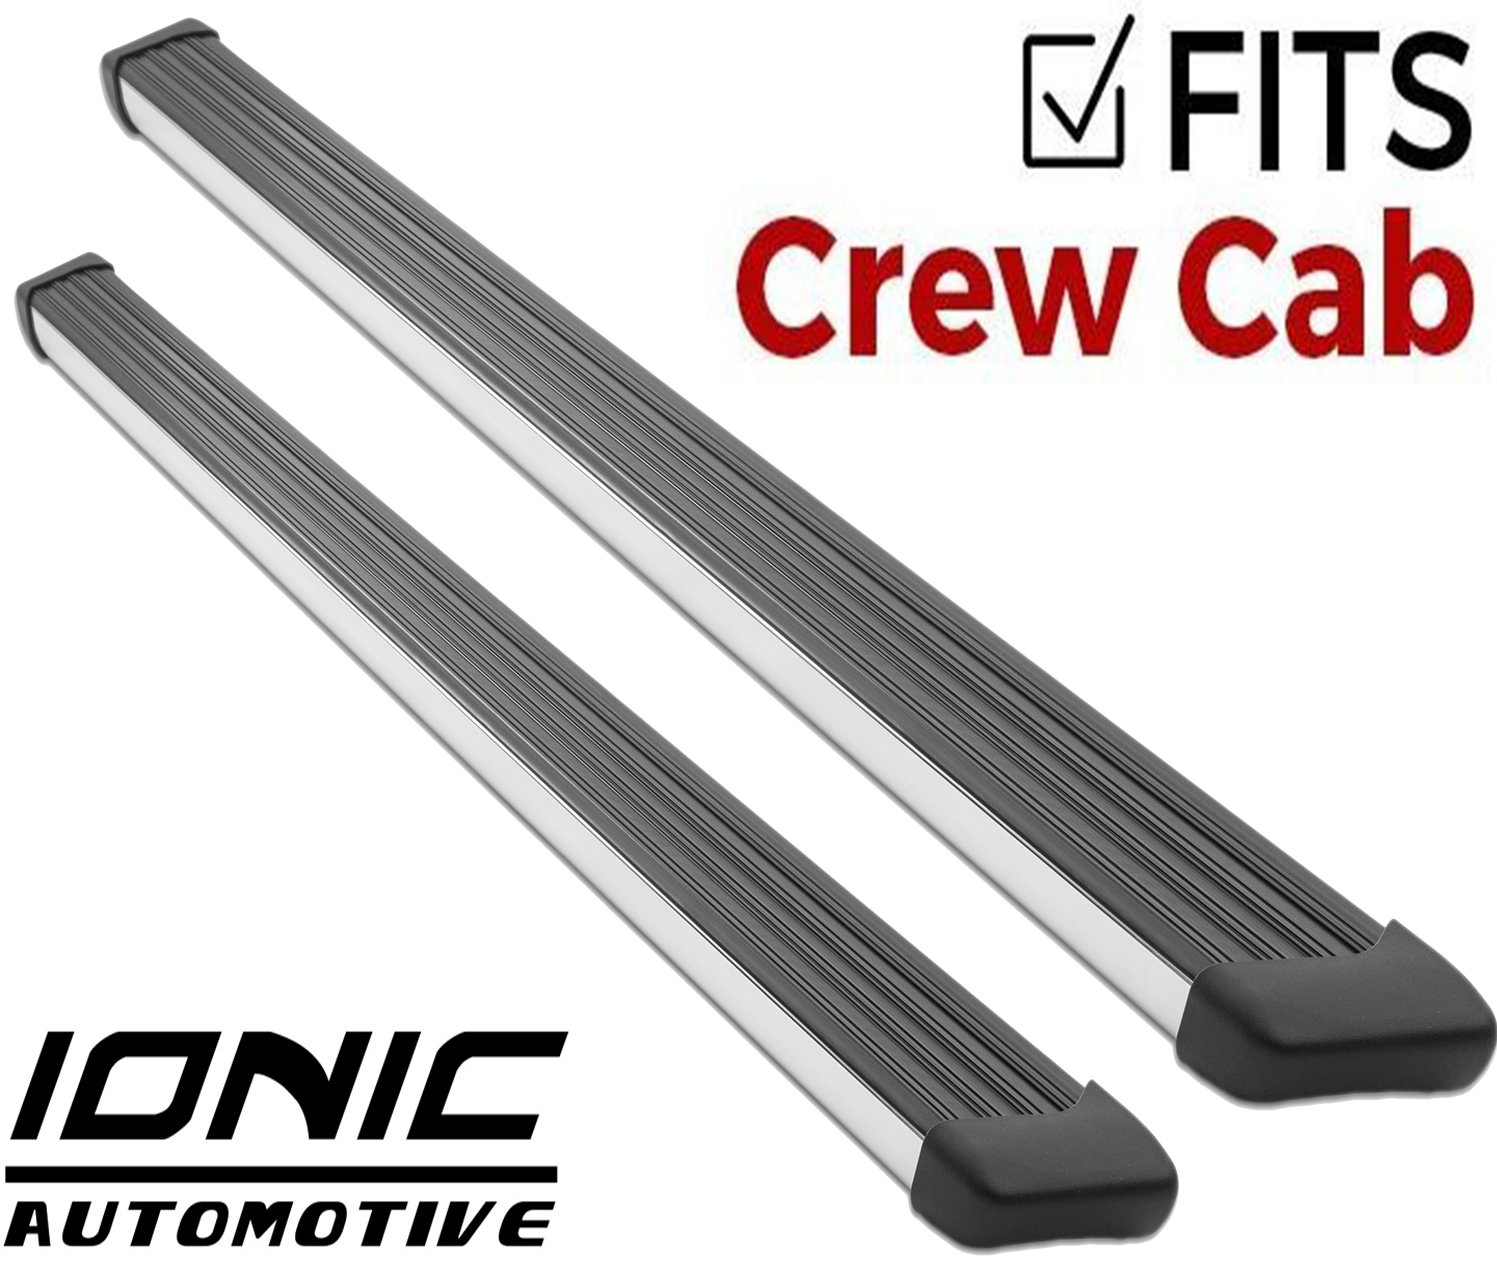 Ionic 61 Series Brite Running Boards 2015-2018 Chevy Colorado GMC Canyon Crew Cab